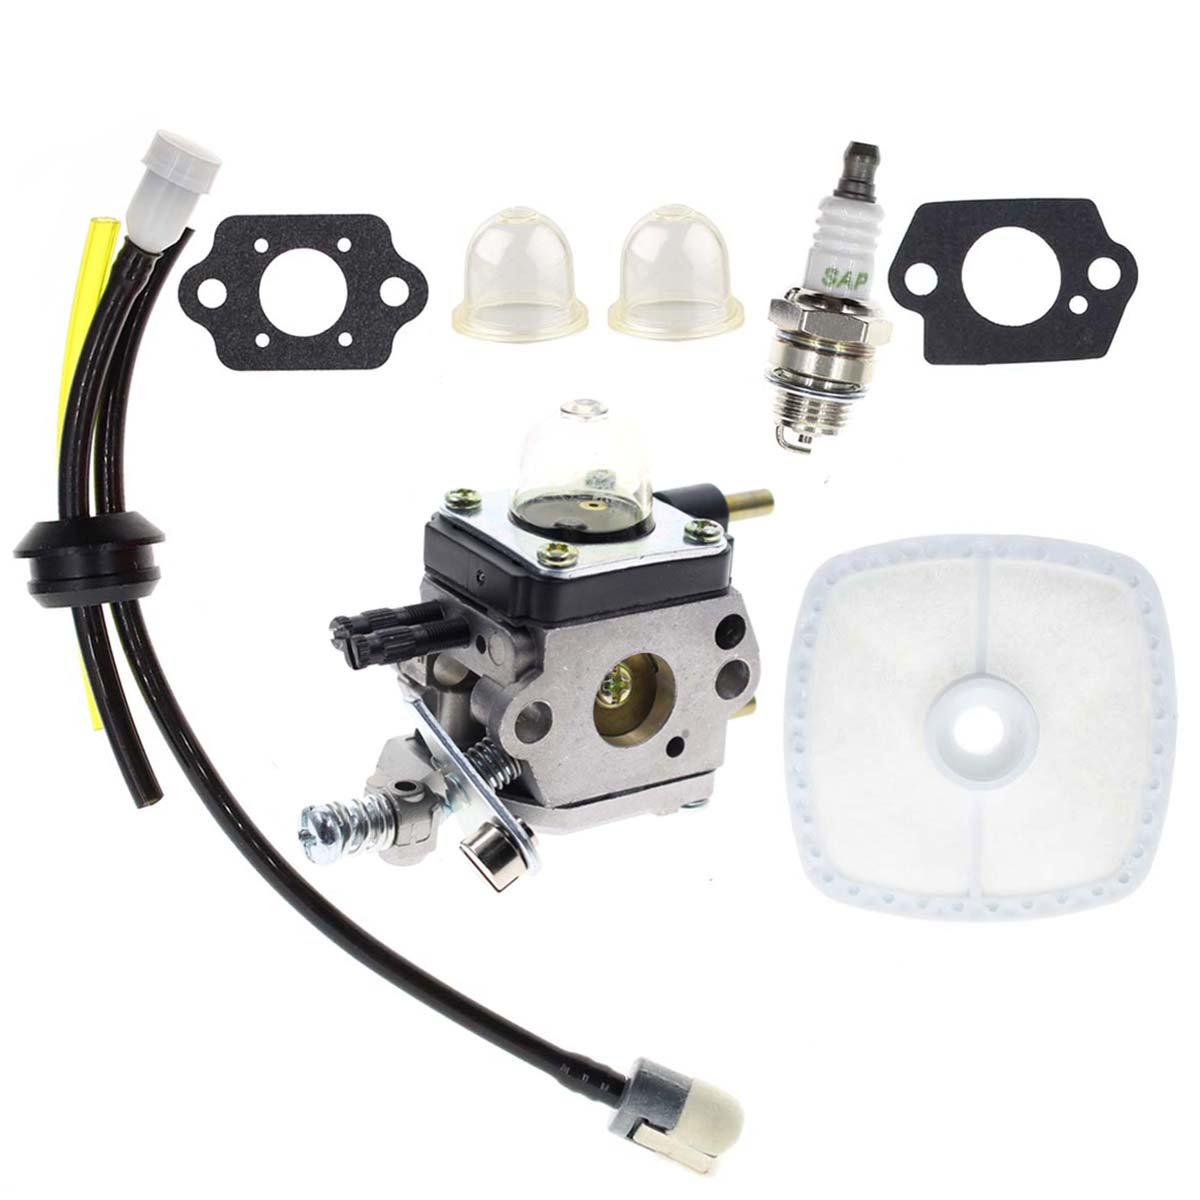 Carbhub C1U-K54A Carburetor for 2-Cycle Mantis 7222 7222E 7222M 7225 7230 7234 7240 7920 7924 Tiller/Cultivator Carb with Air Filter Repower Kit by Carbhub